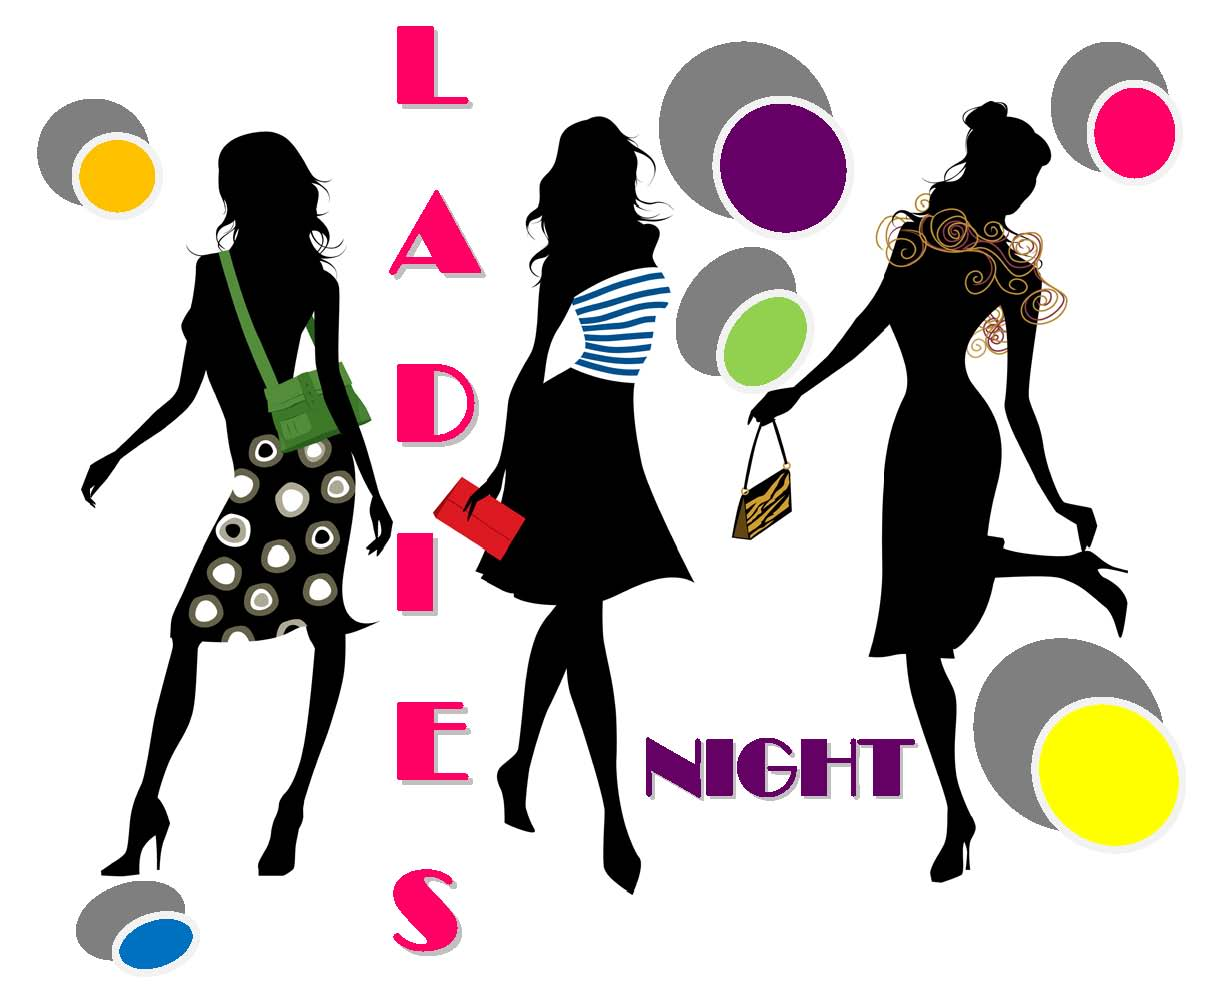 10 Ladies Night Out Clipart Free Cliparts That You Can Download To You